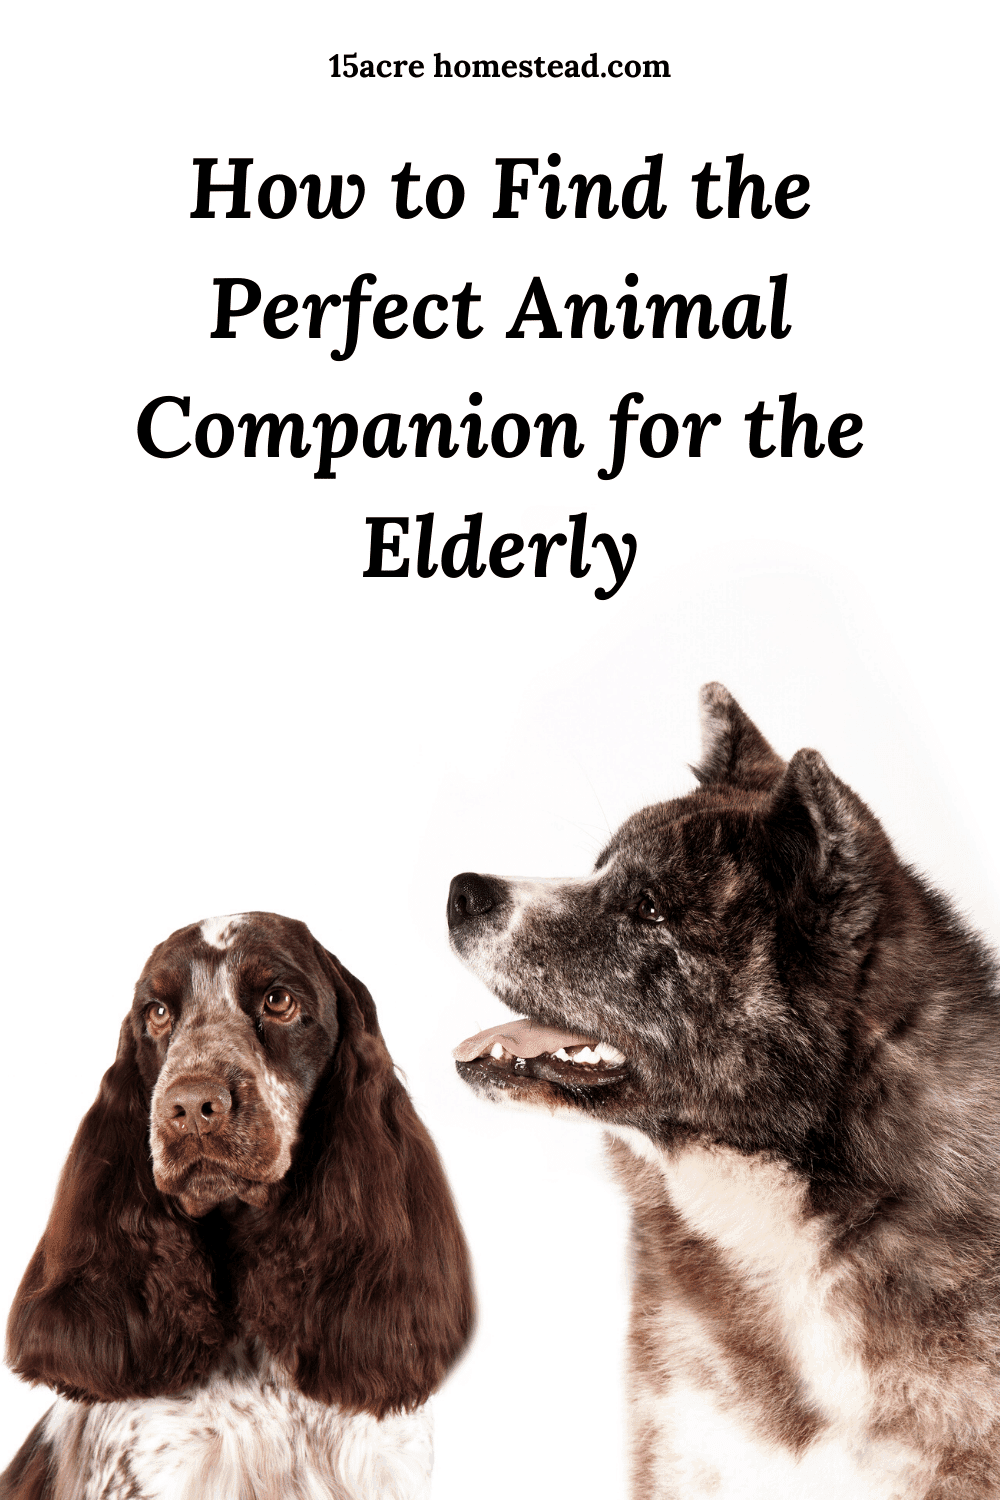 Finding the right companion for the elderly can be easy when you follow these tips.